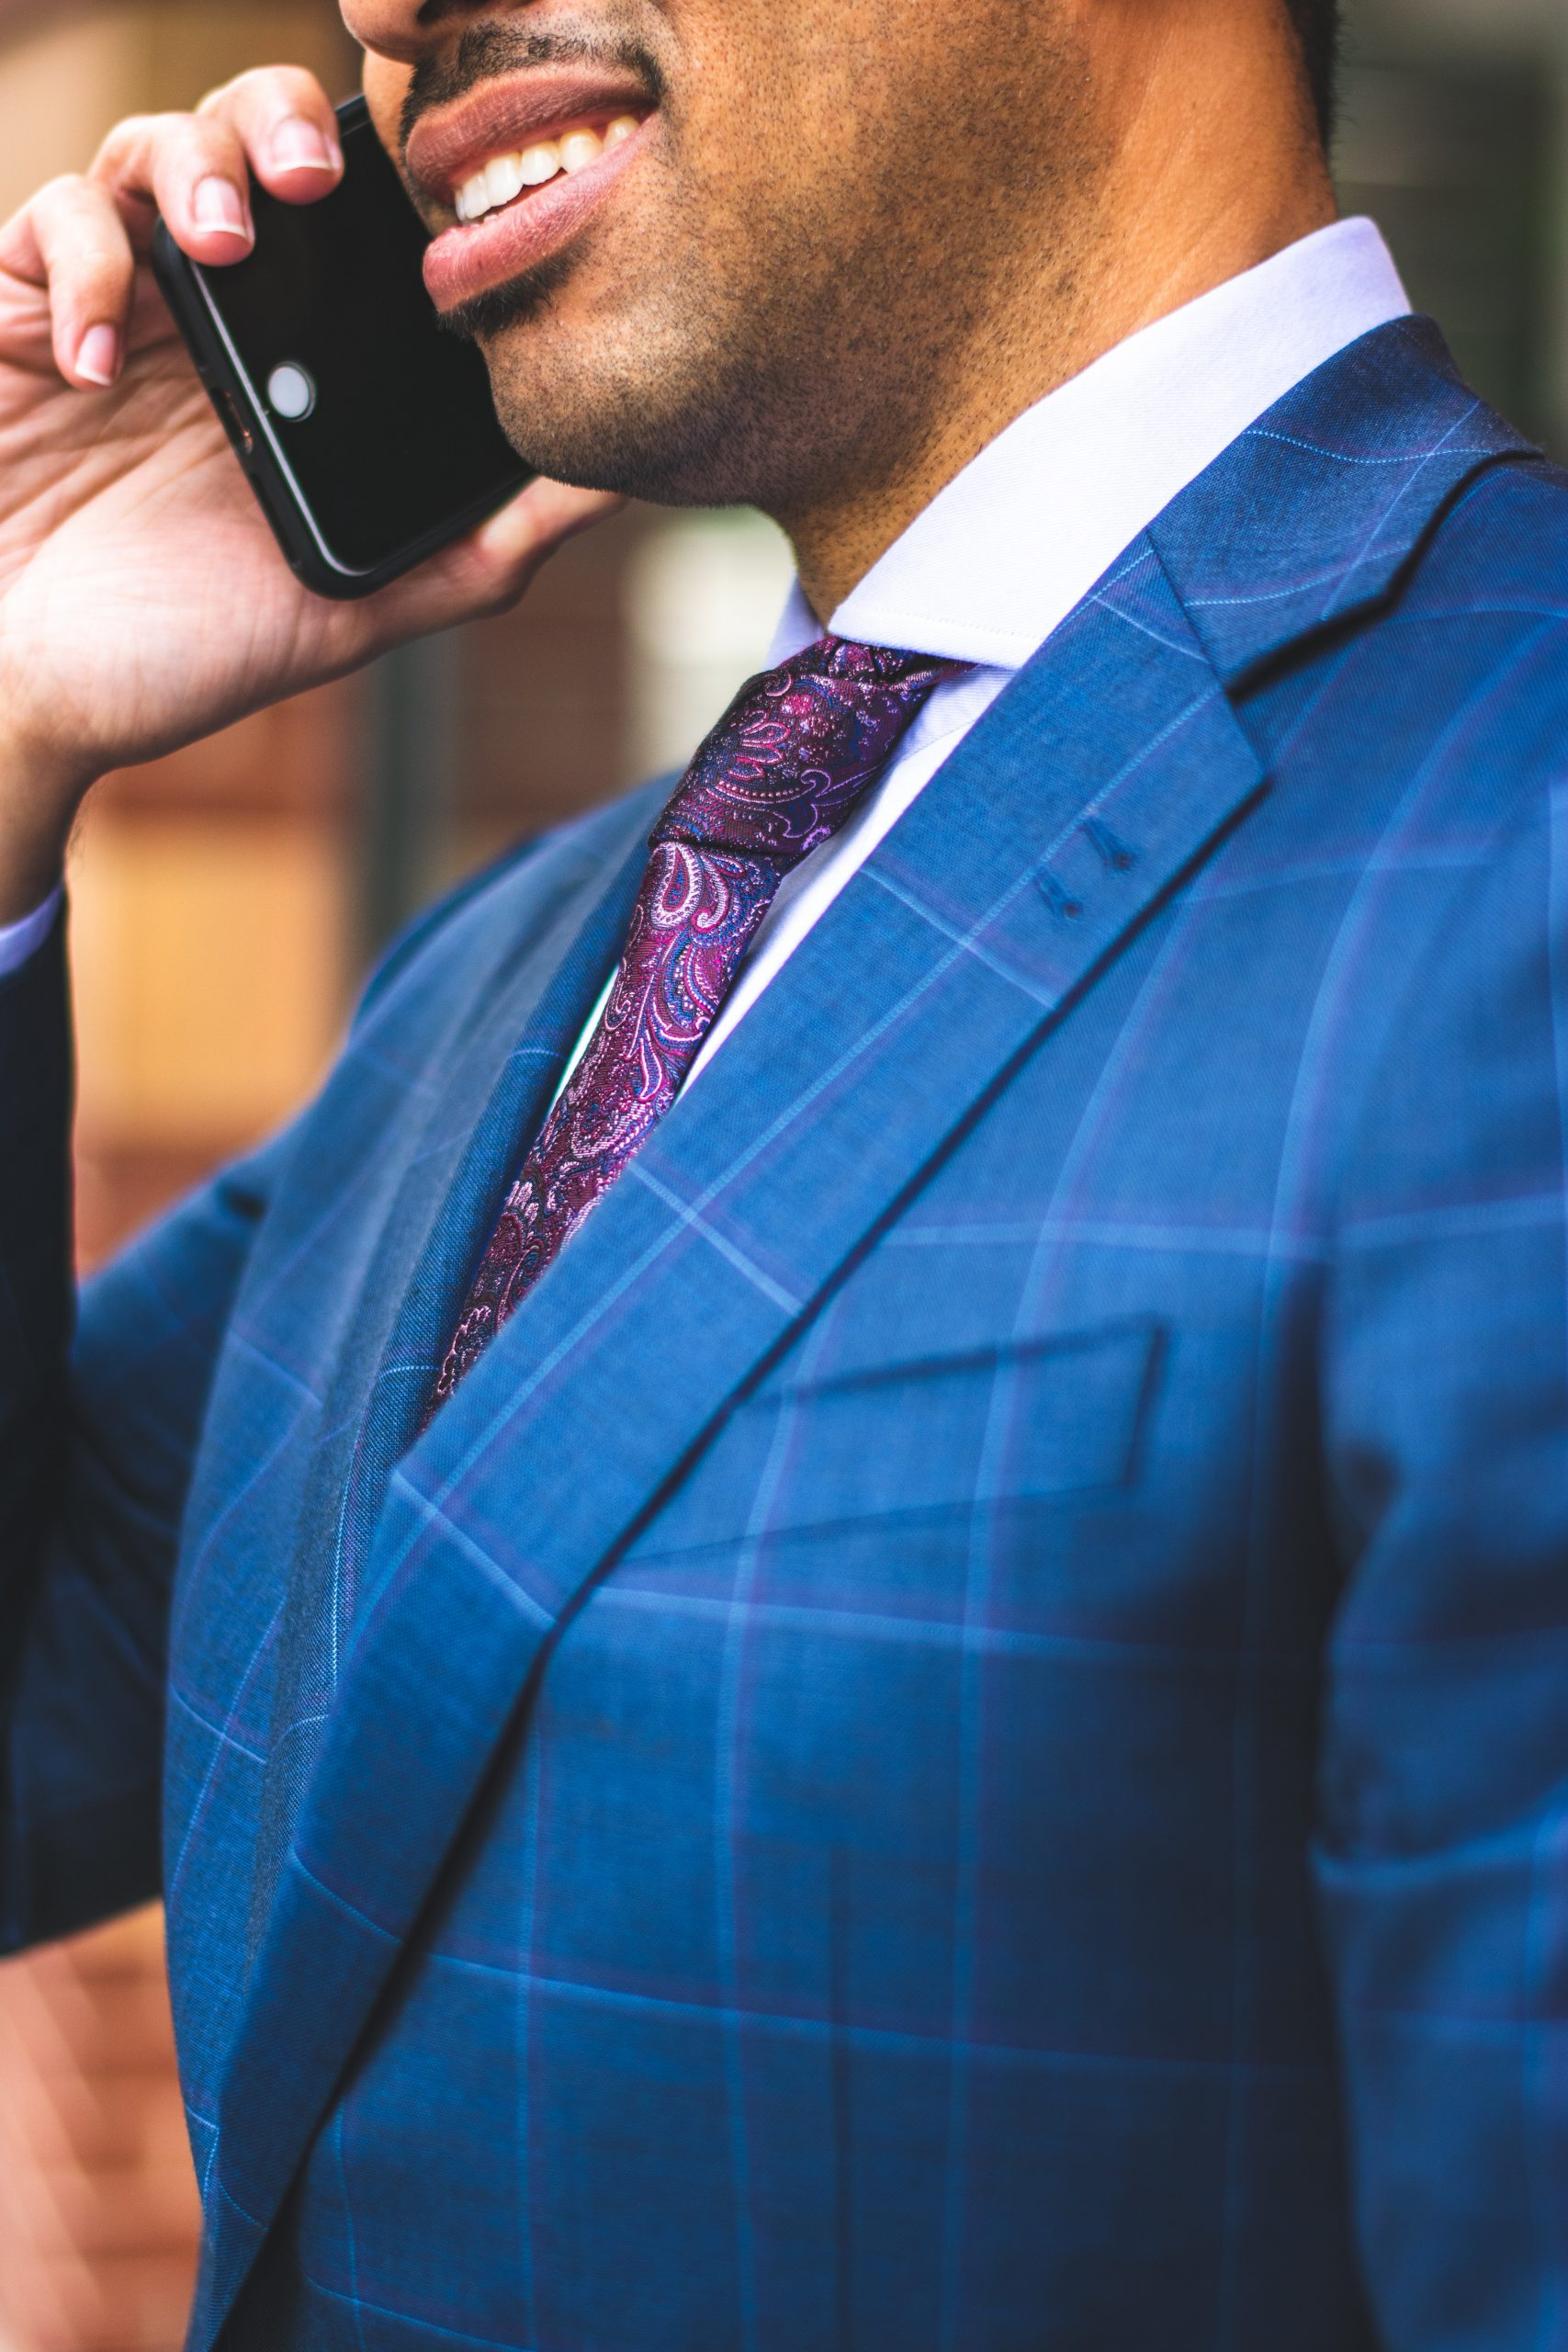 close-up-photo-of-man-in-blue-pinstripe-suit-jacket-talking-2254120